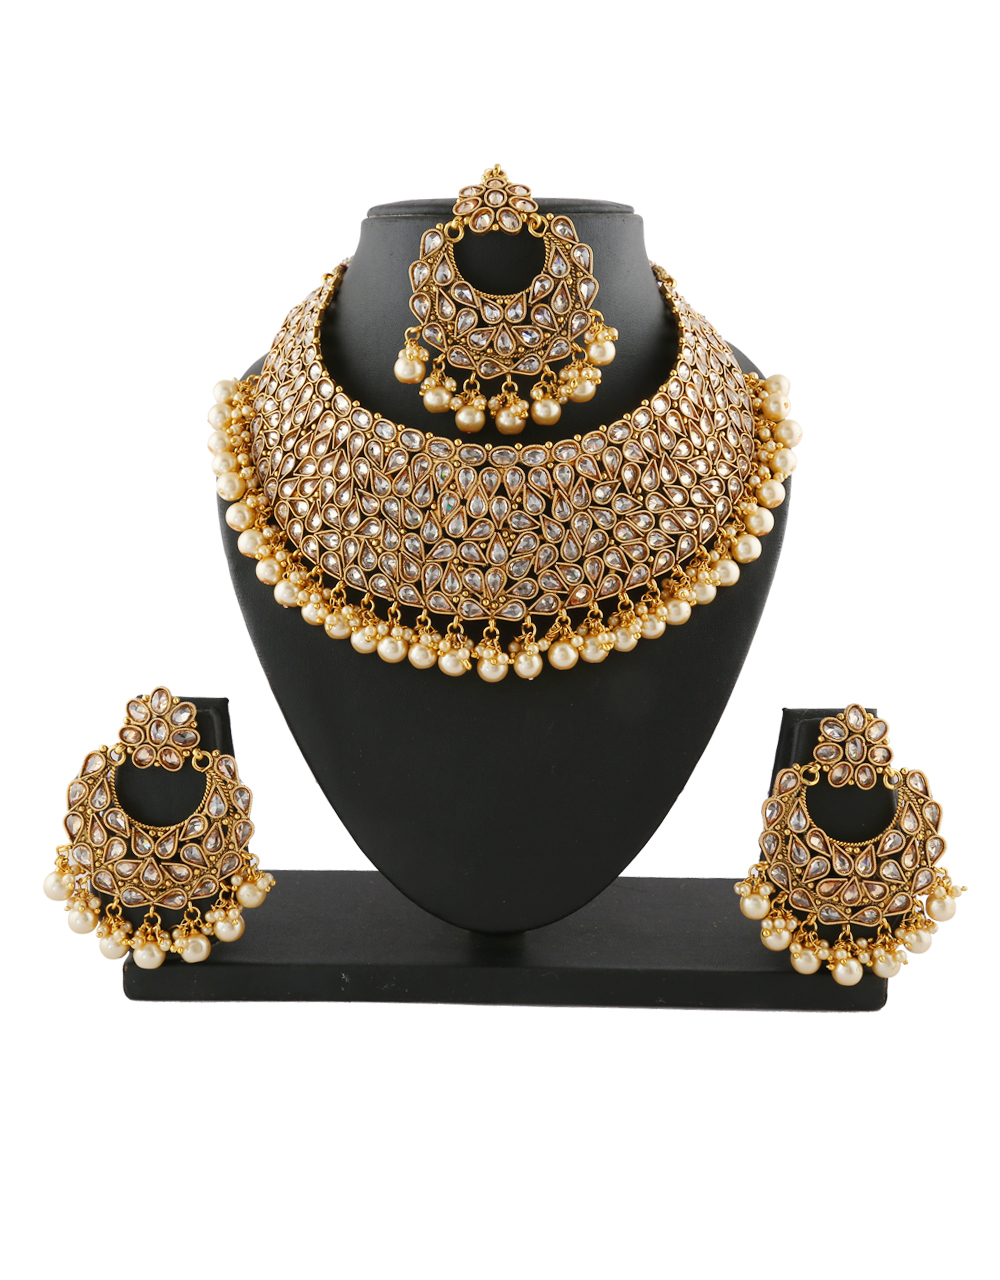 Very Classy Gold Finish Wedding Necklace Styled With Pearls Necklace